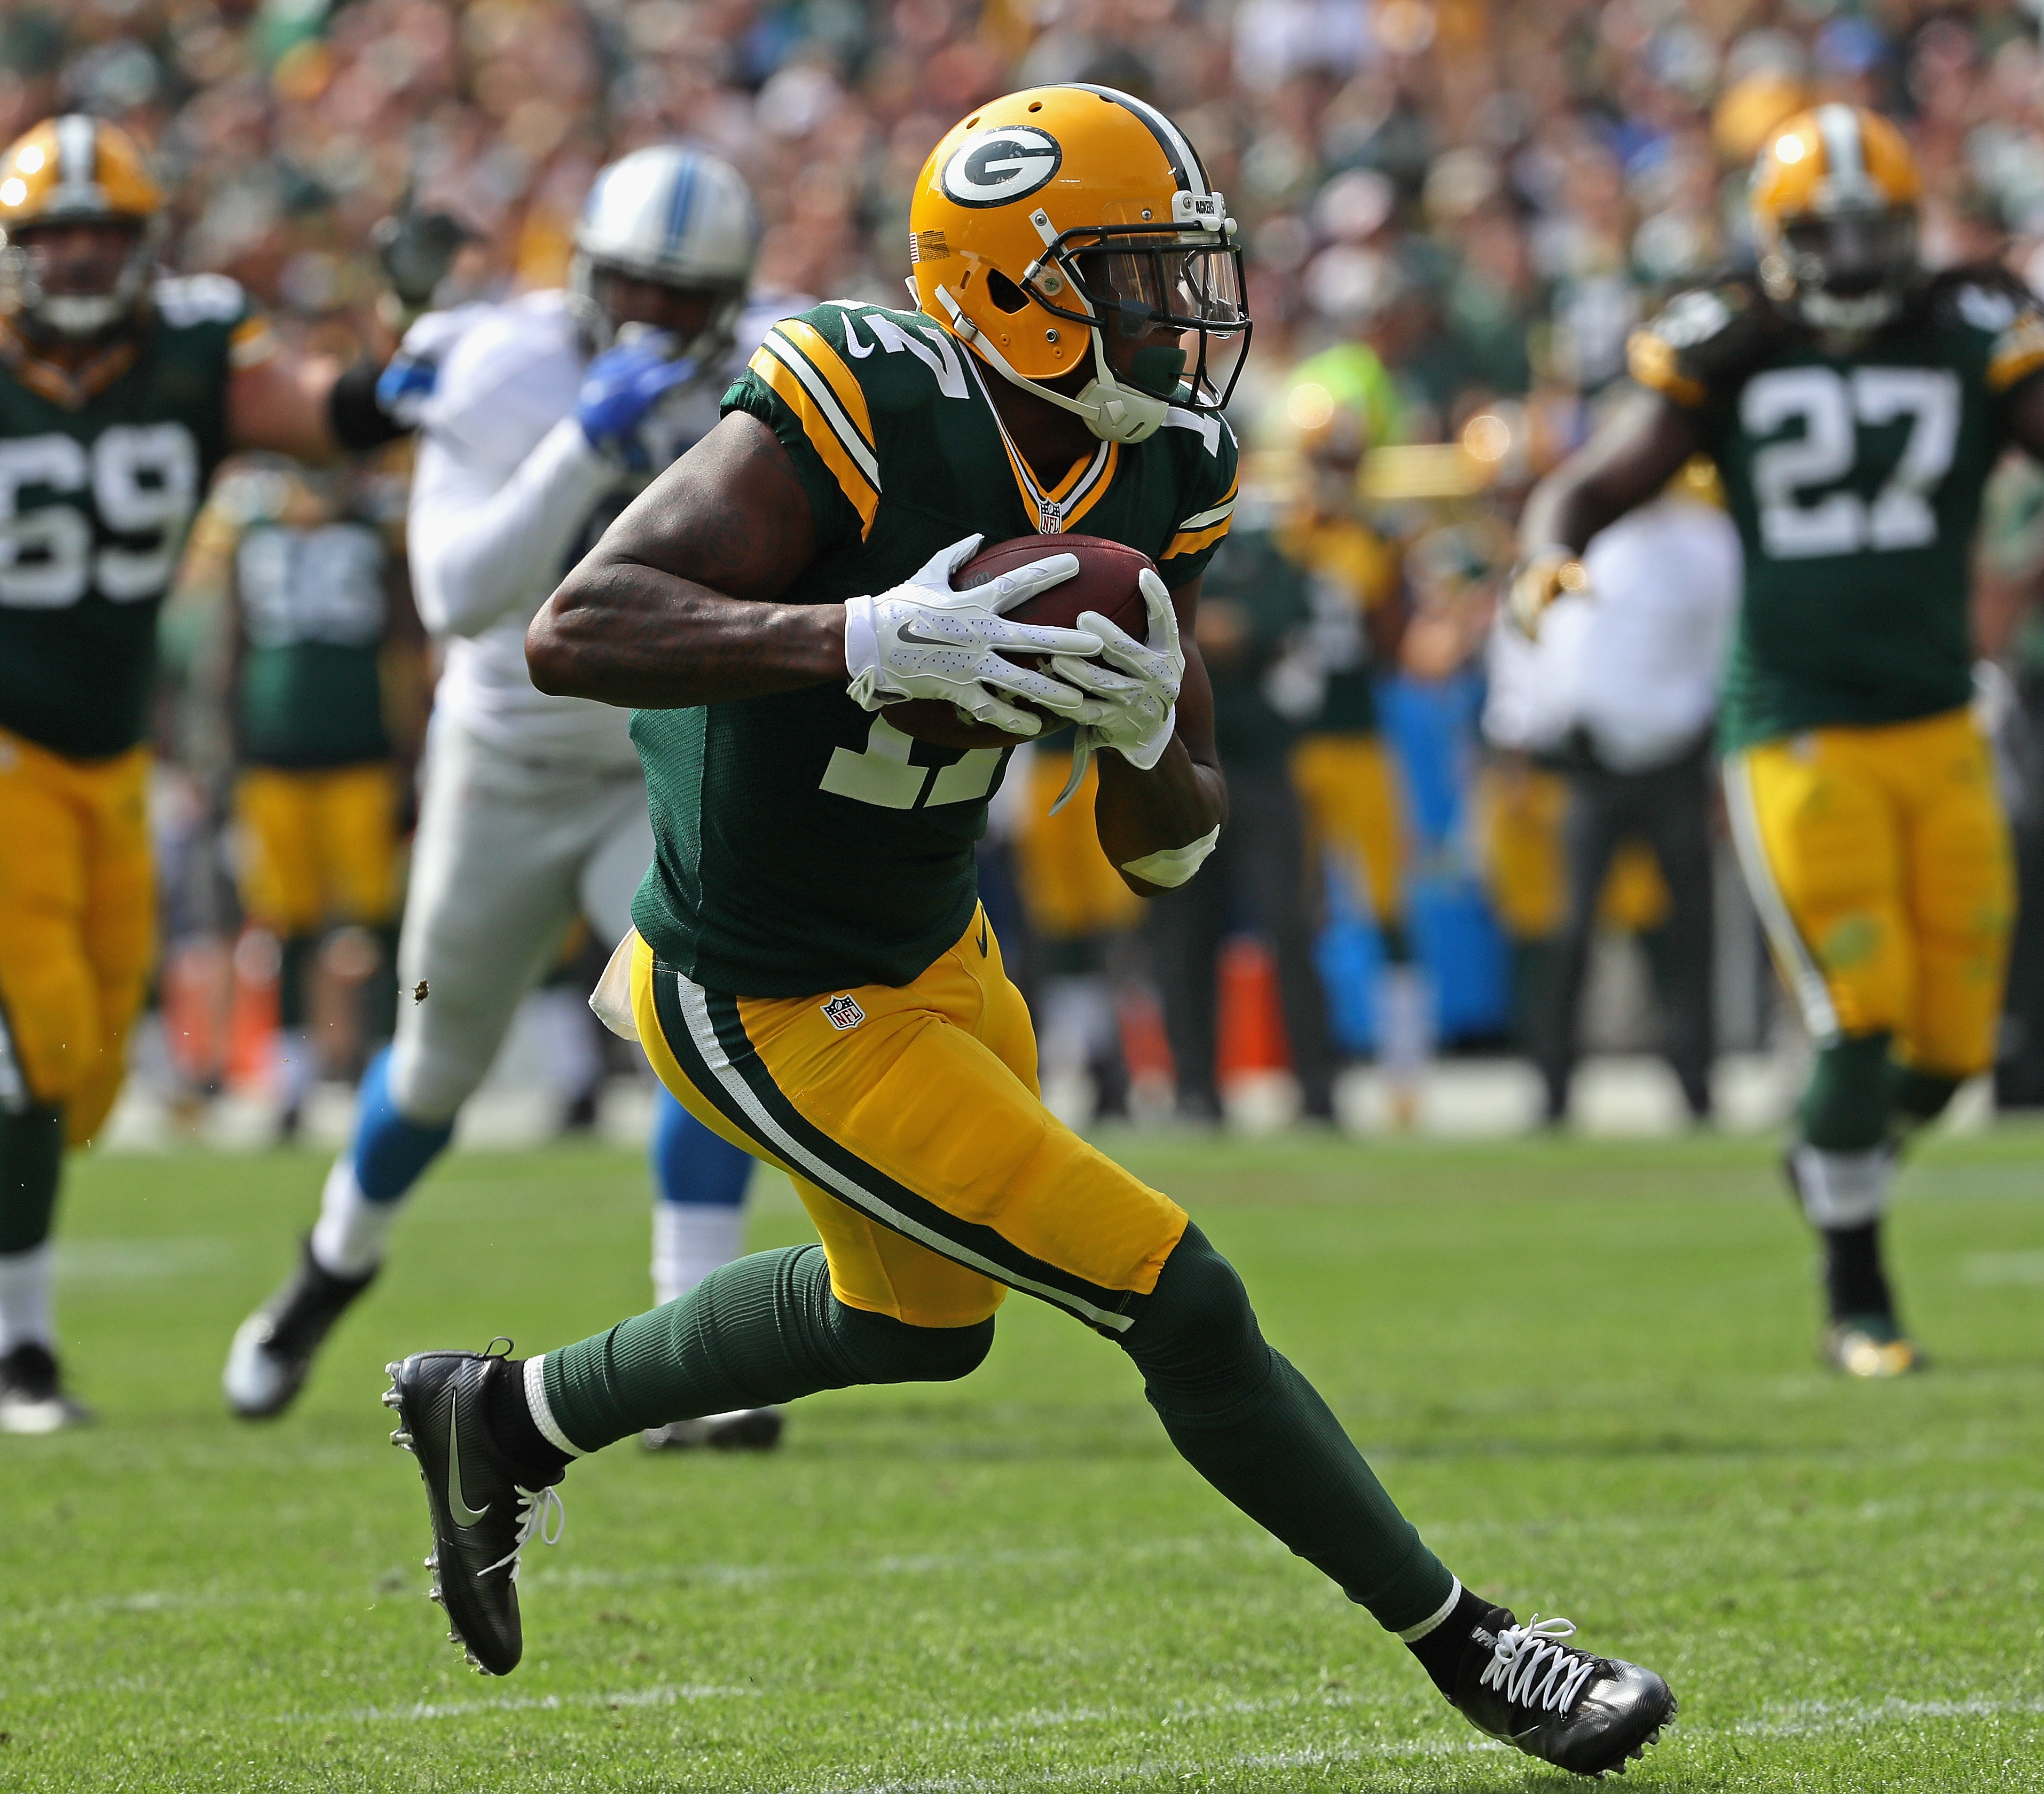 lions vs packers - photo #48